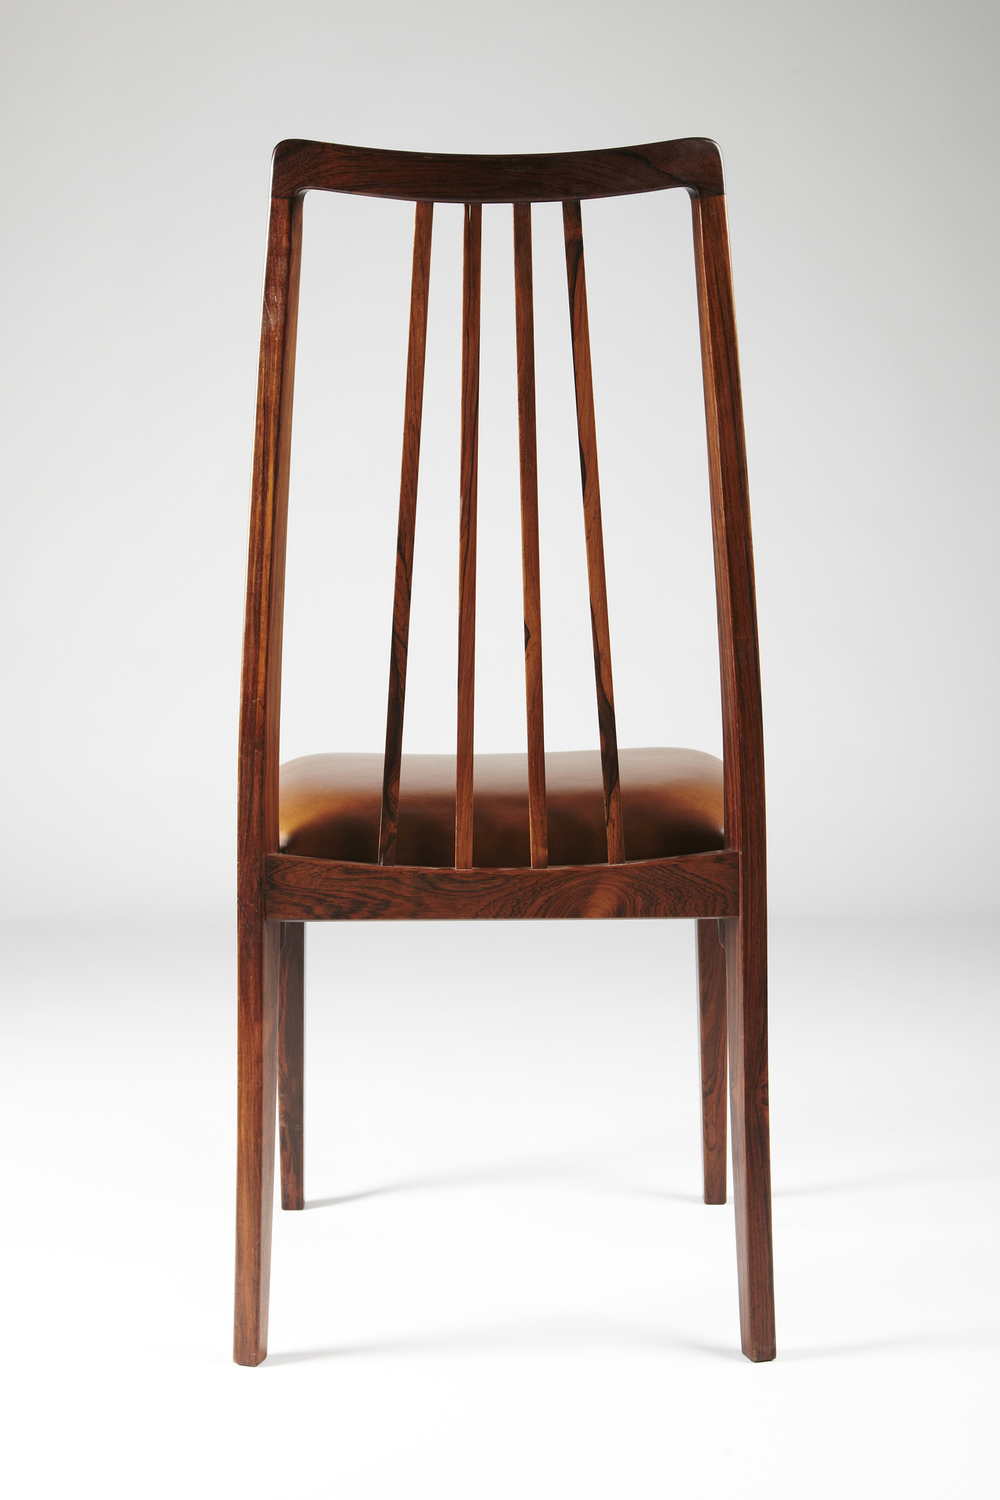 Koefoed 1959 dining chair5_resize.jpg